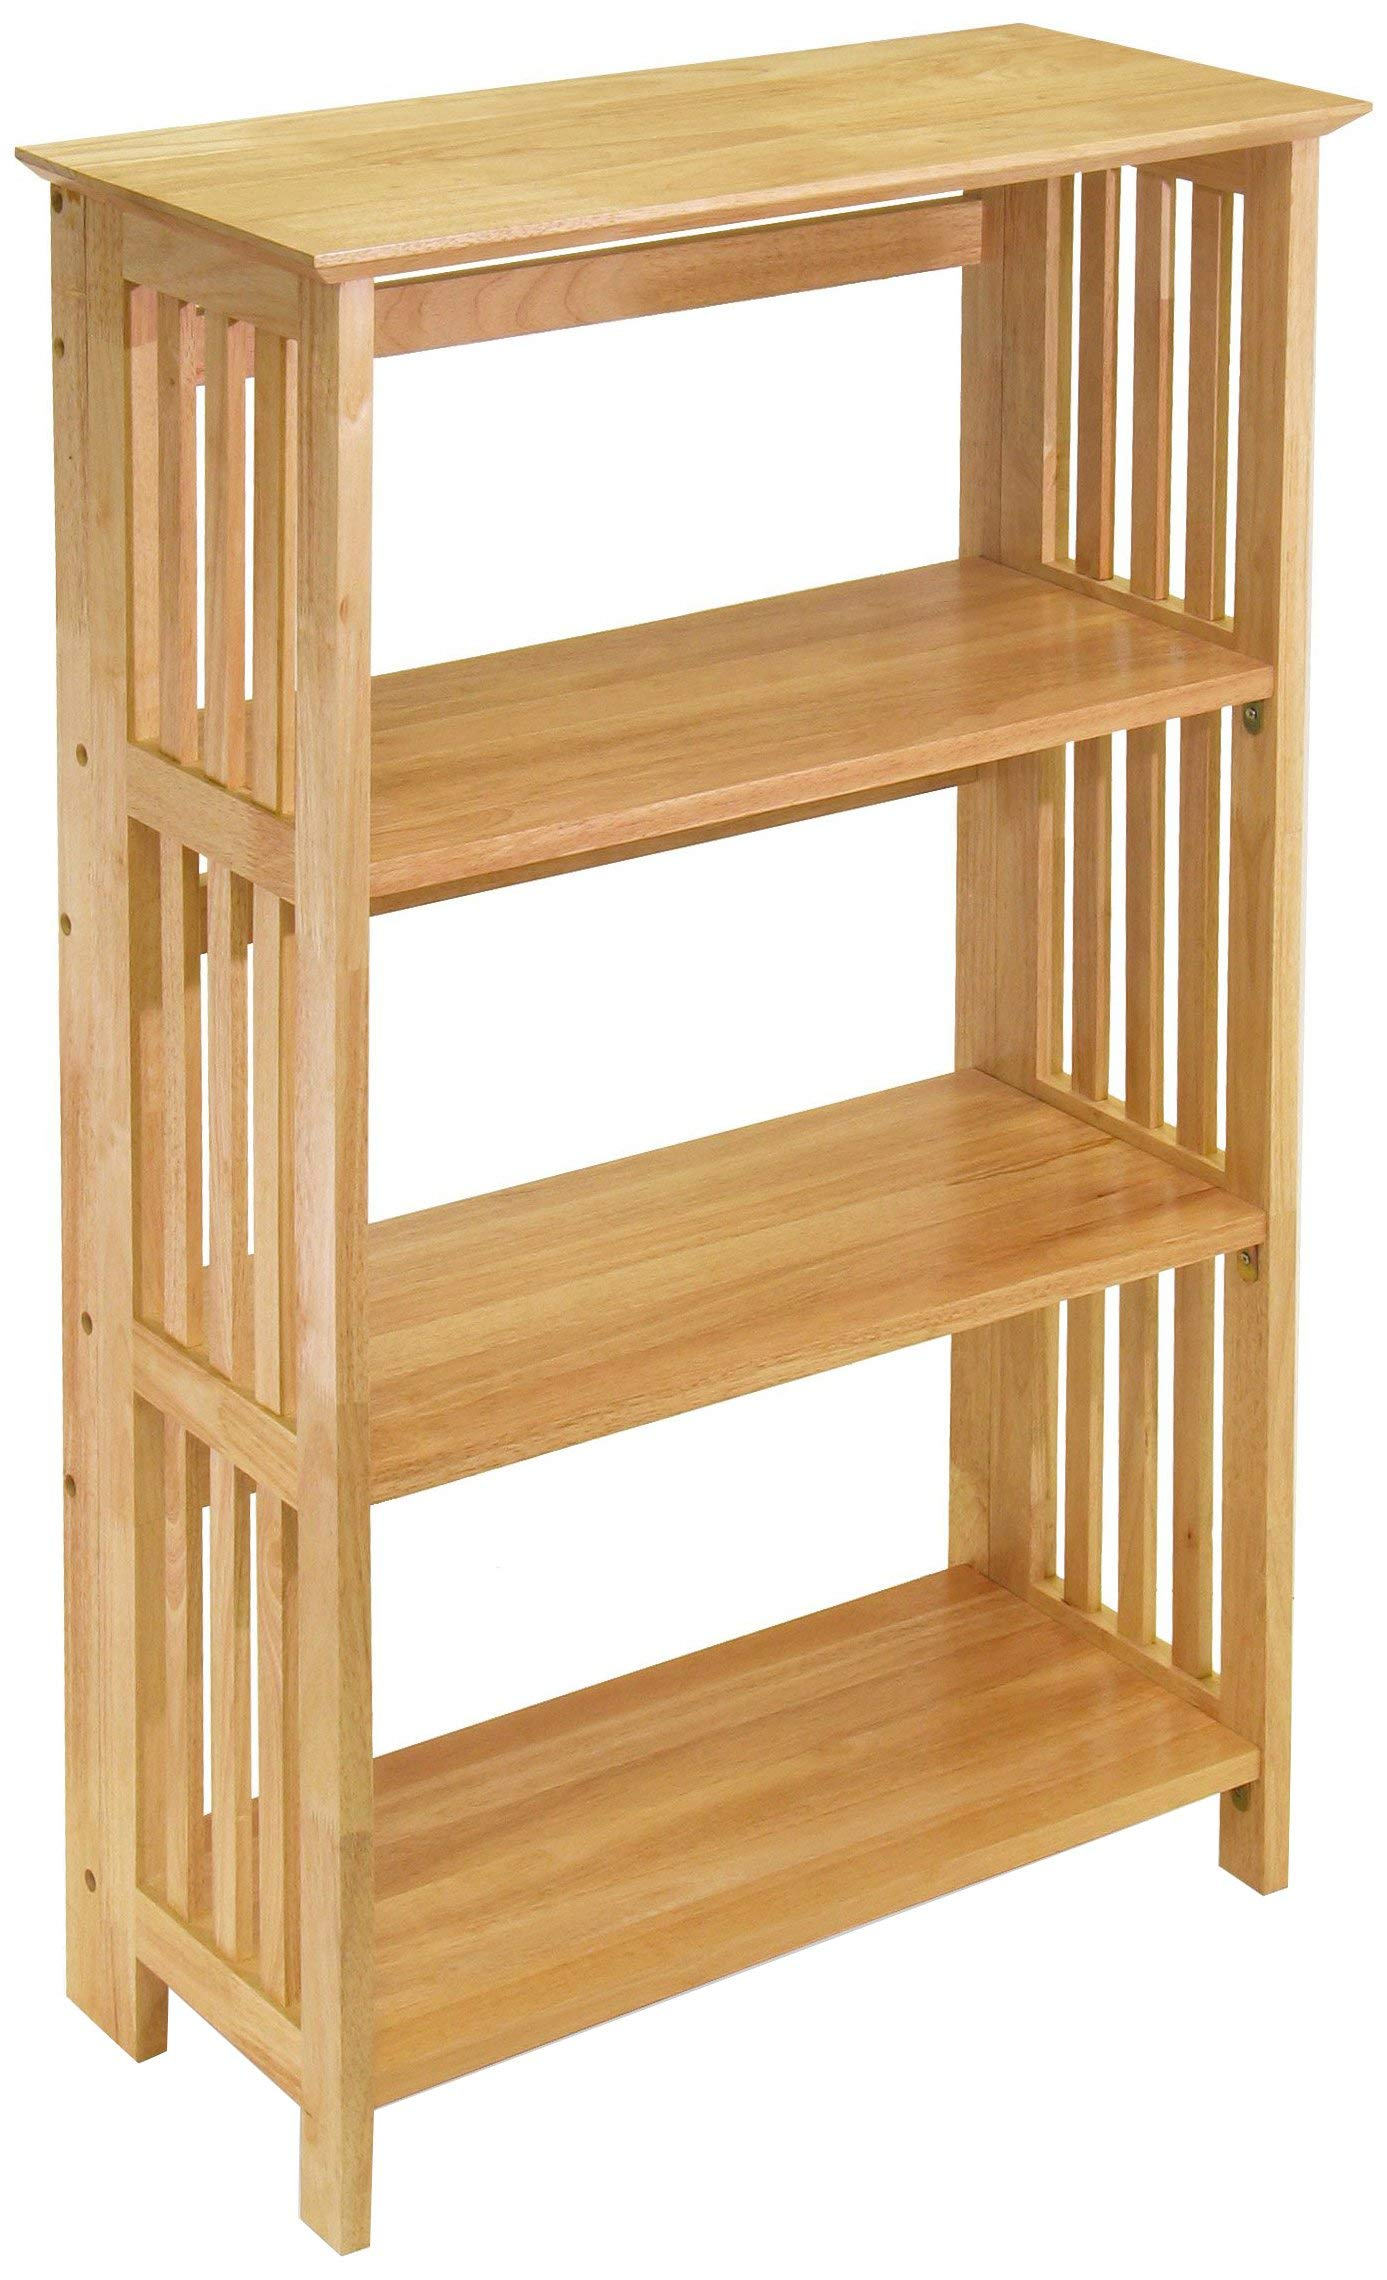 Winsome Wood 82427 Mission Shelving, Natural by Winsome Wood